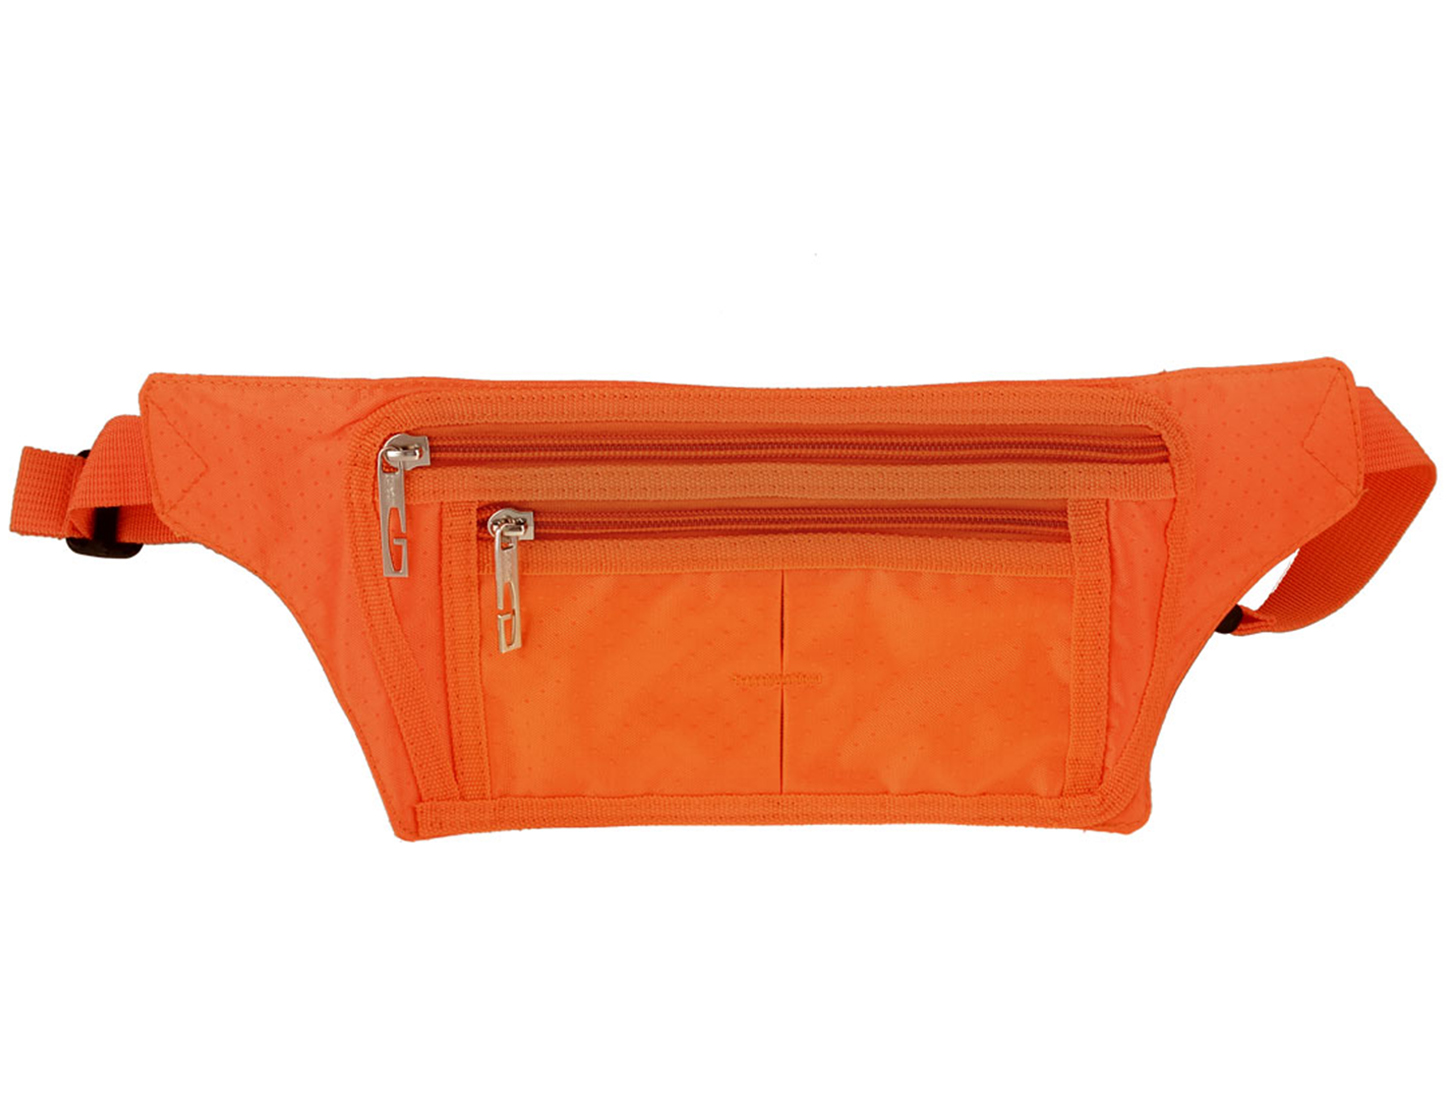 Lady Adjustable Strap Zip up 3 Compartments Patch Pocket Waist Bag Pack Orange